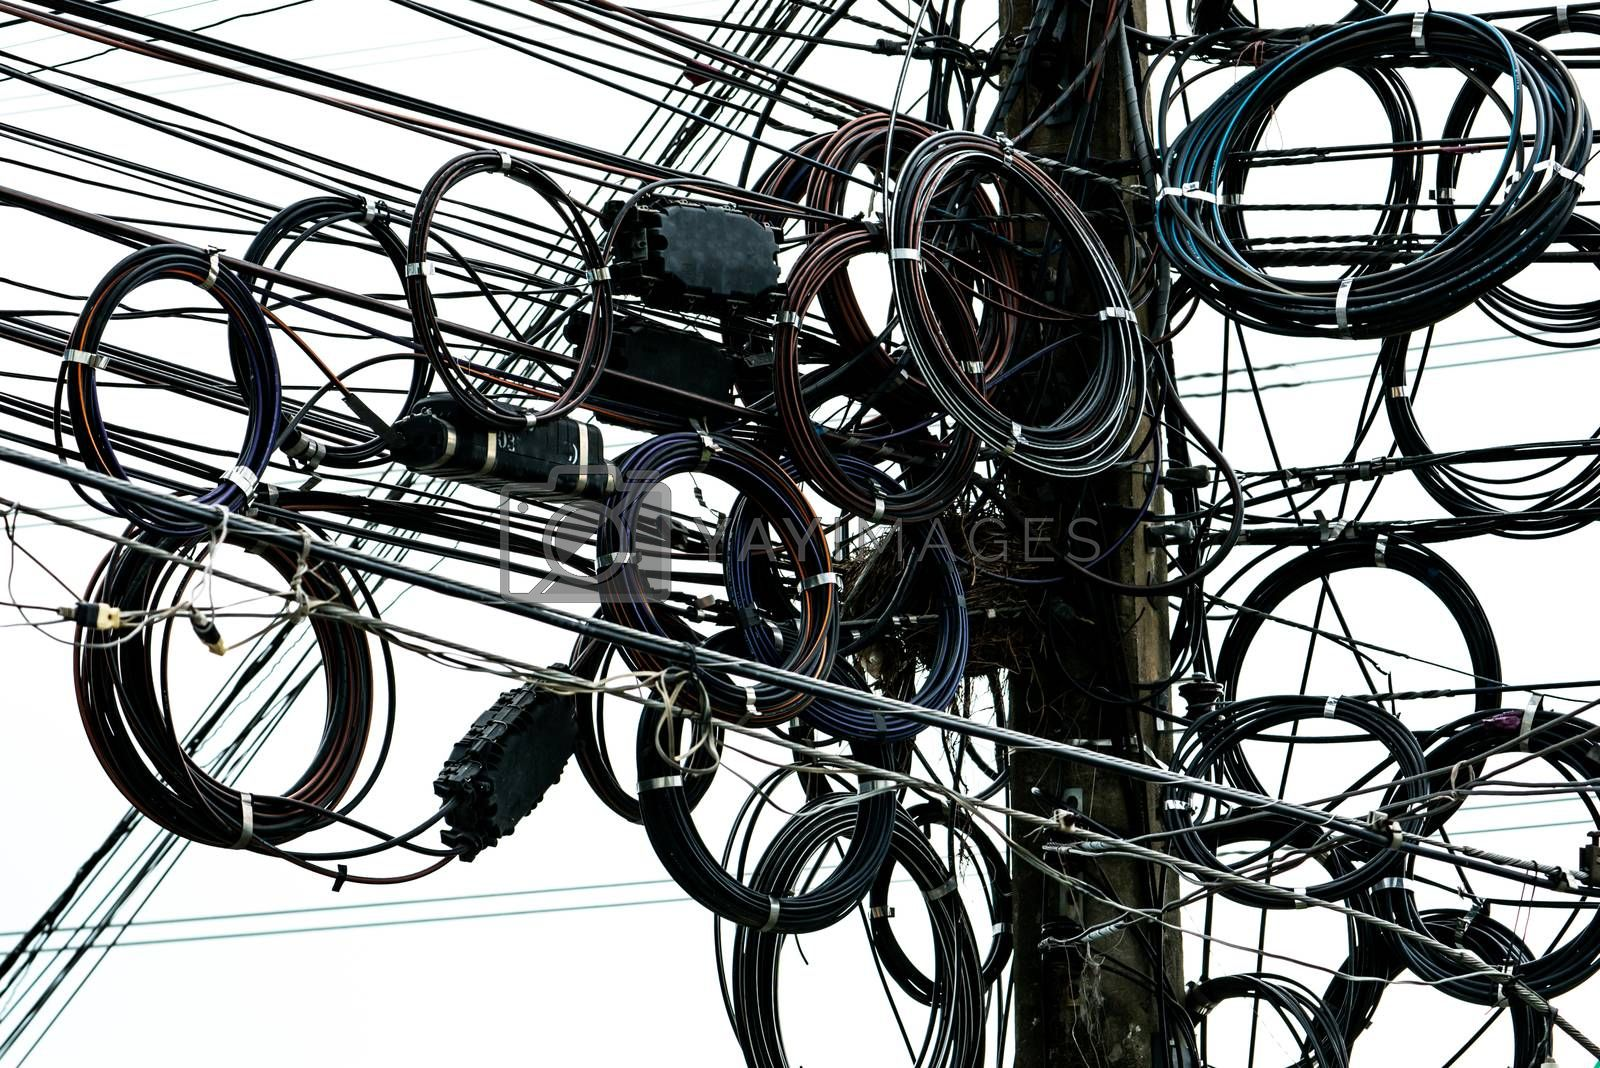 Tangled Electrical Wires On Urban Electric Pole Disorganized And Messy To Organization Management Concept Royalty Free Stock Image Yayimages Royalty Free Stock Photos And Vectors